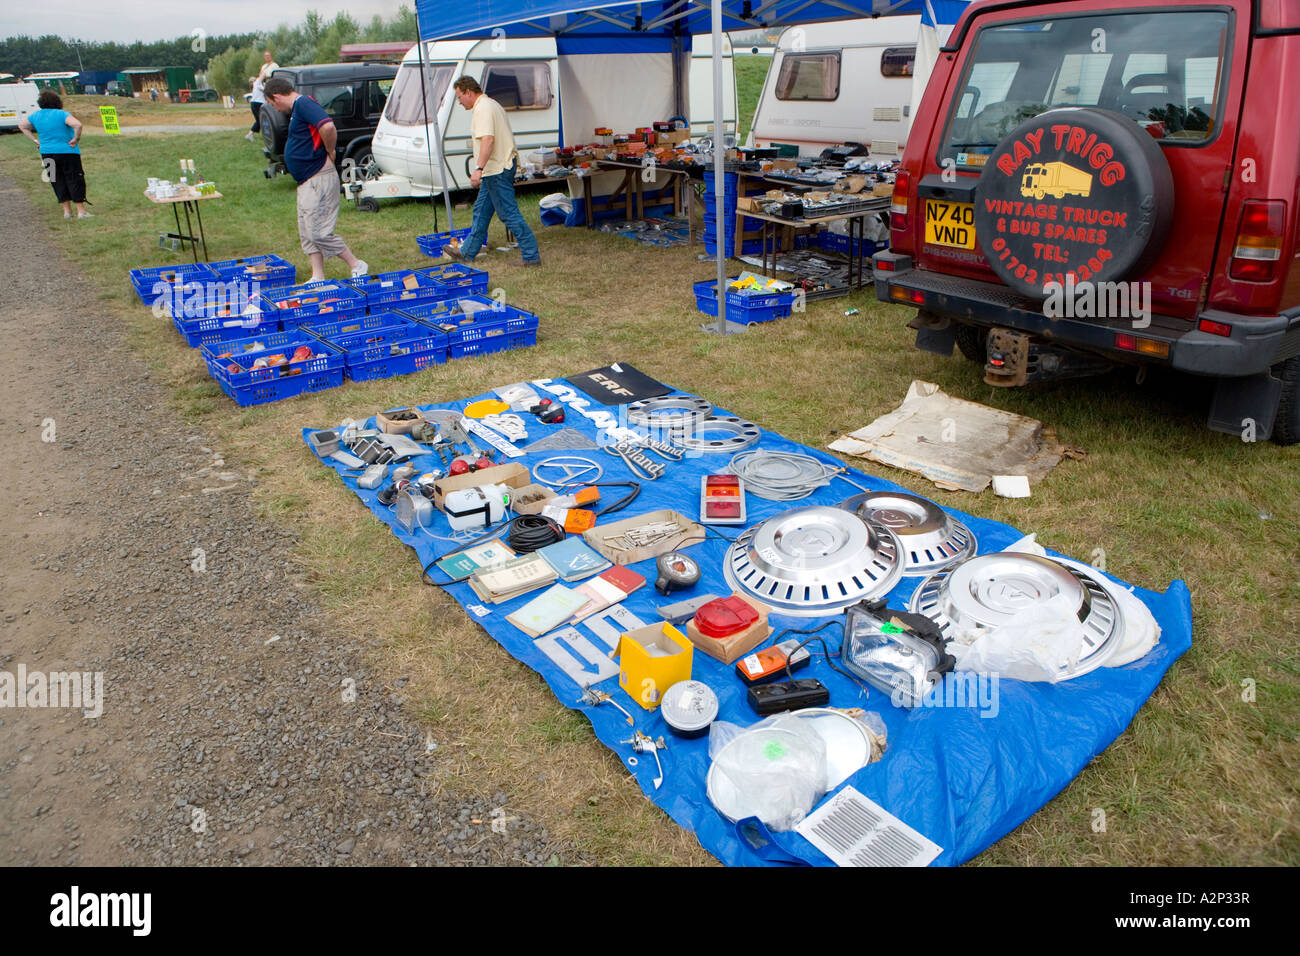 Second Hand Car Parts For Sale At An Auto Jumble Boot Sale Stock